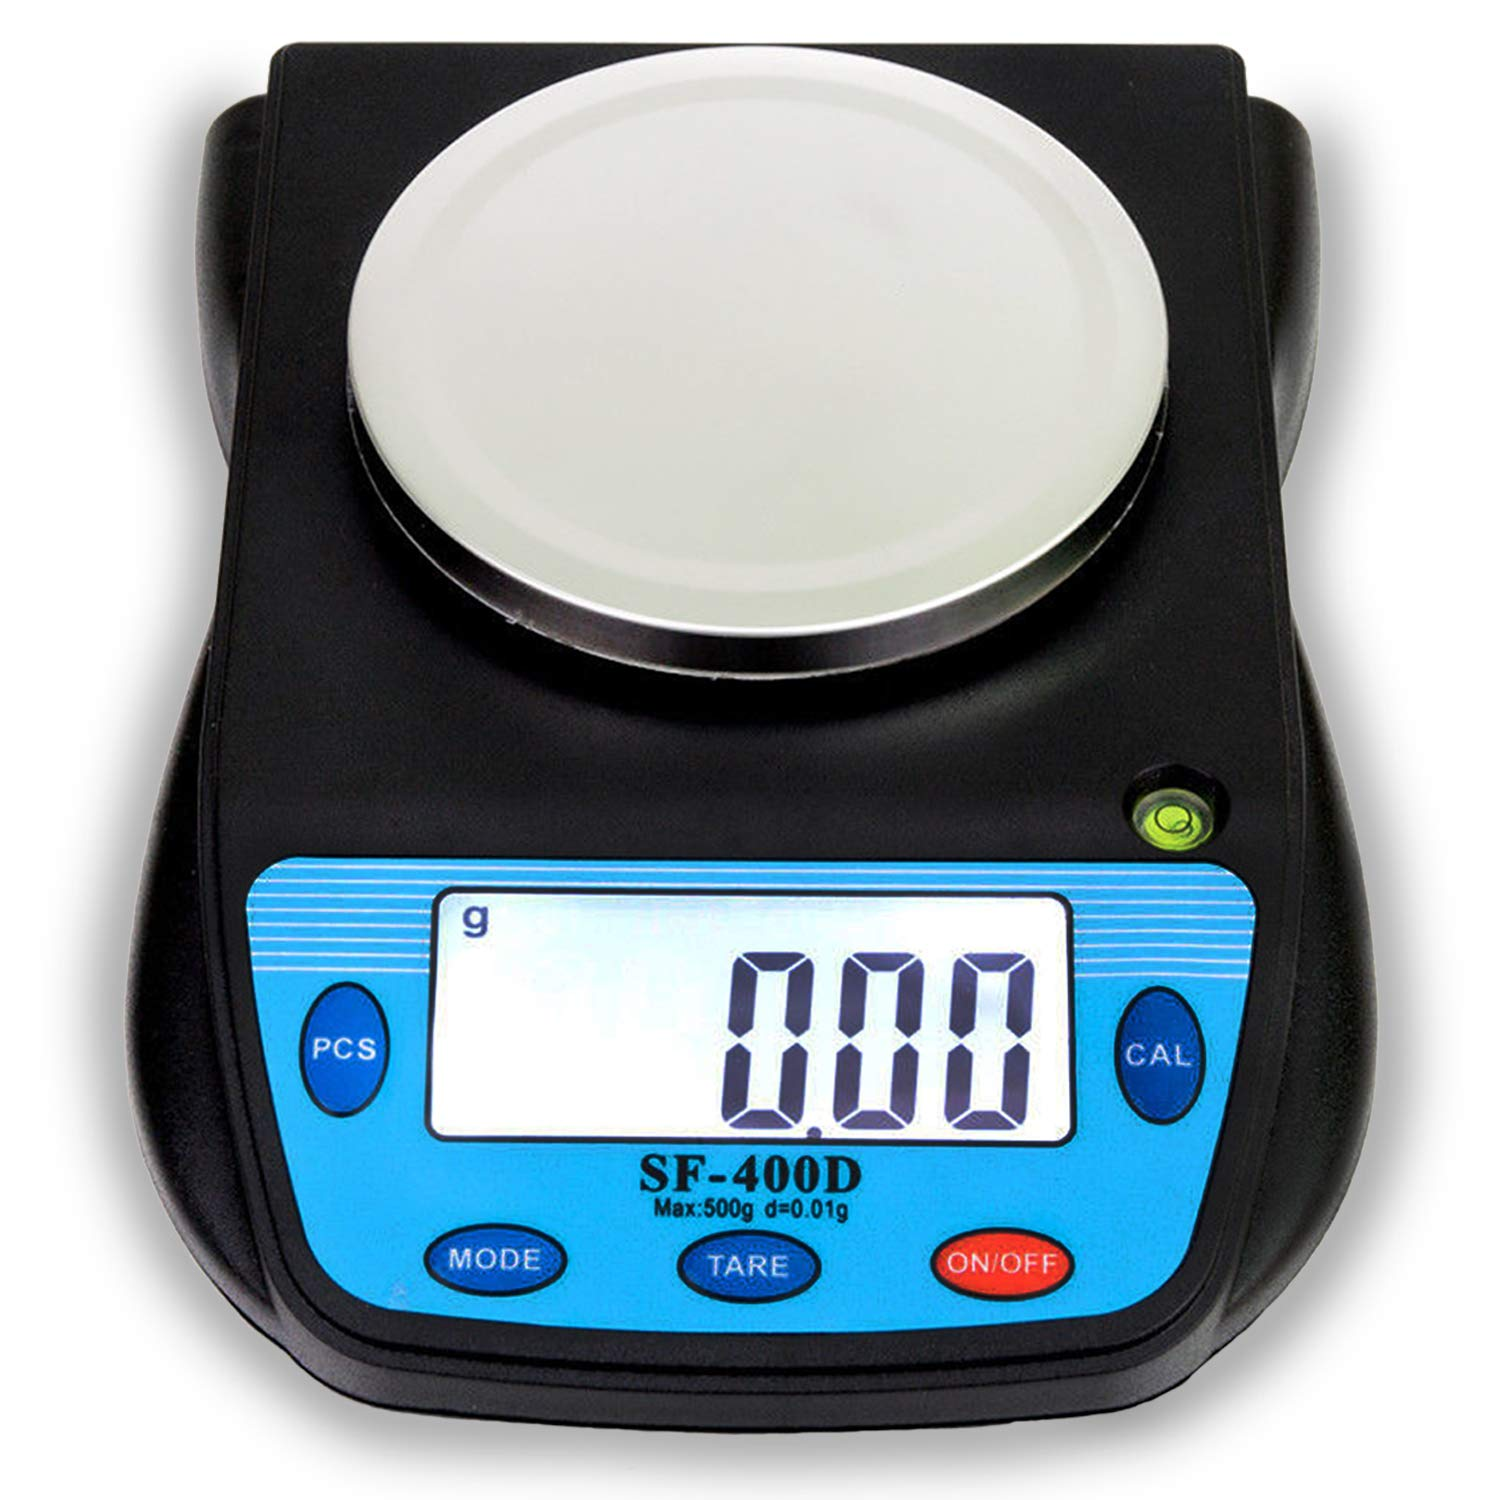 500g x 0.01g High Precision Laboratory Analytical Digital Balance Scale with LCD Display, Multifunctional Electronic Compact Lab/Food/Kitchen/Postal Scales, Tare Function, AA Batteries Included